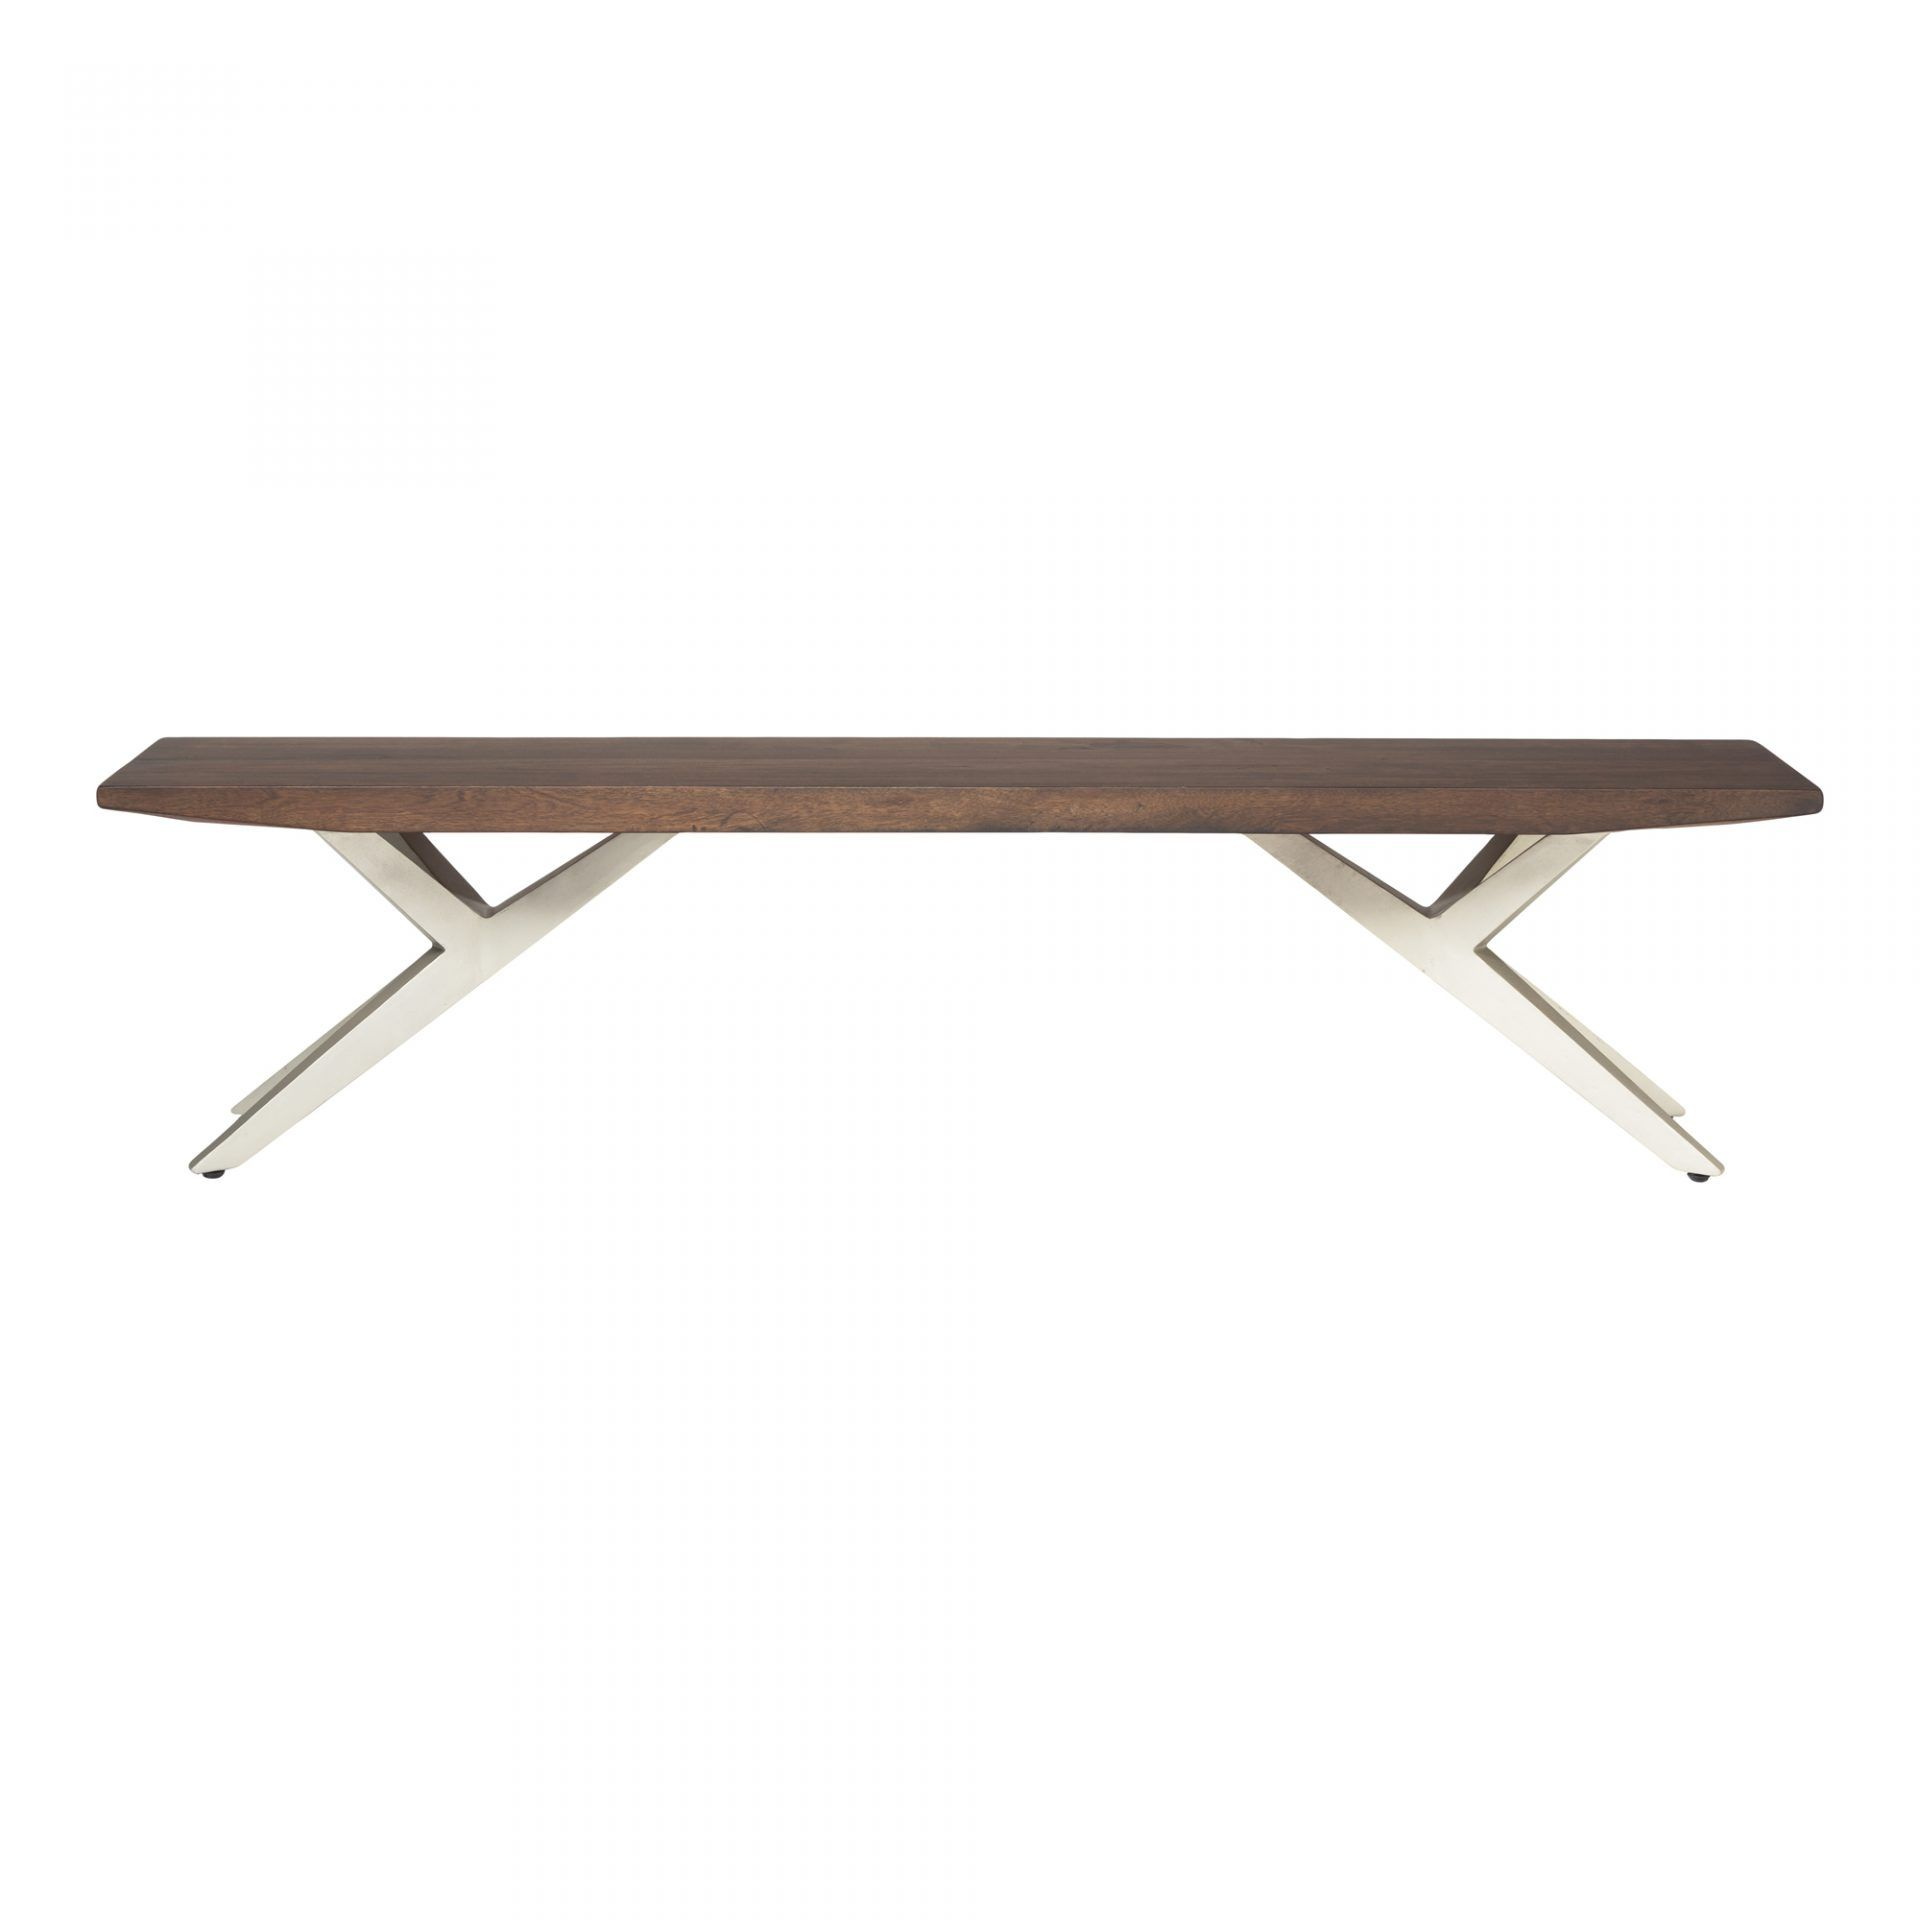 Wondrous Air Loft Bench Dark Brown Dining Benches Moes Wholesale Caraccident5 Cool Chair Designs And Ideas Caraccident5Info